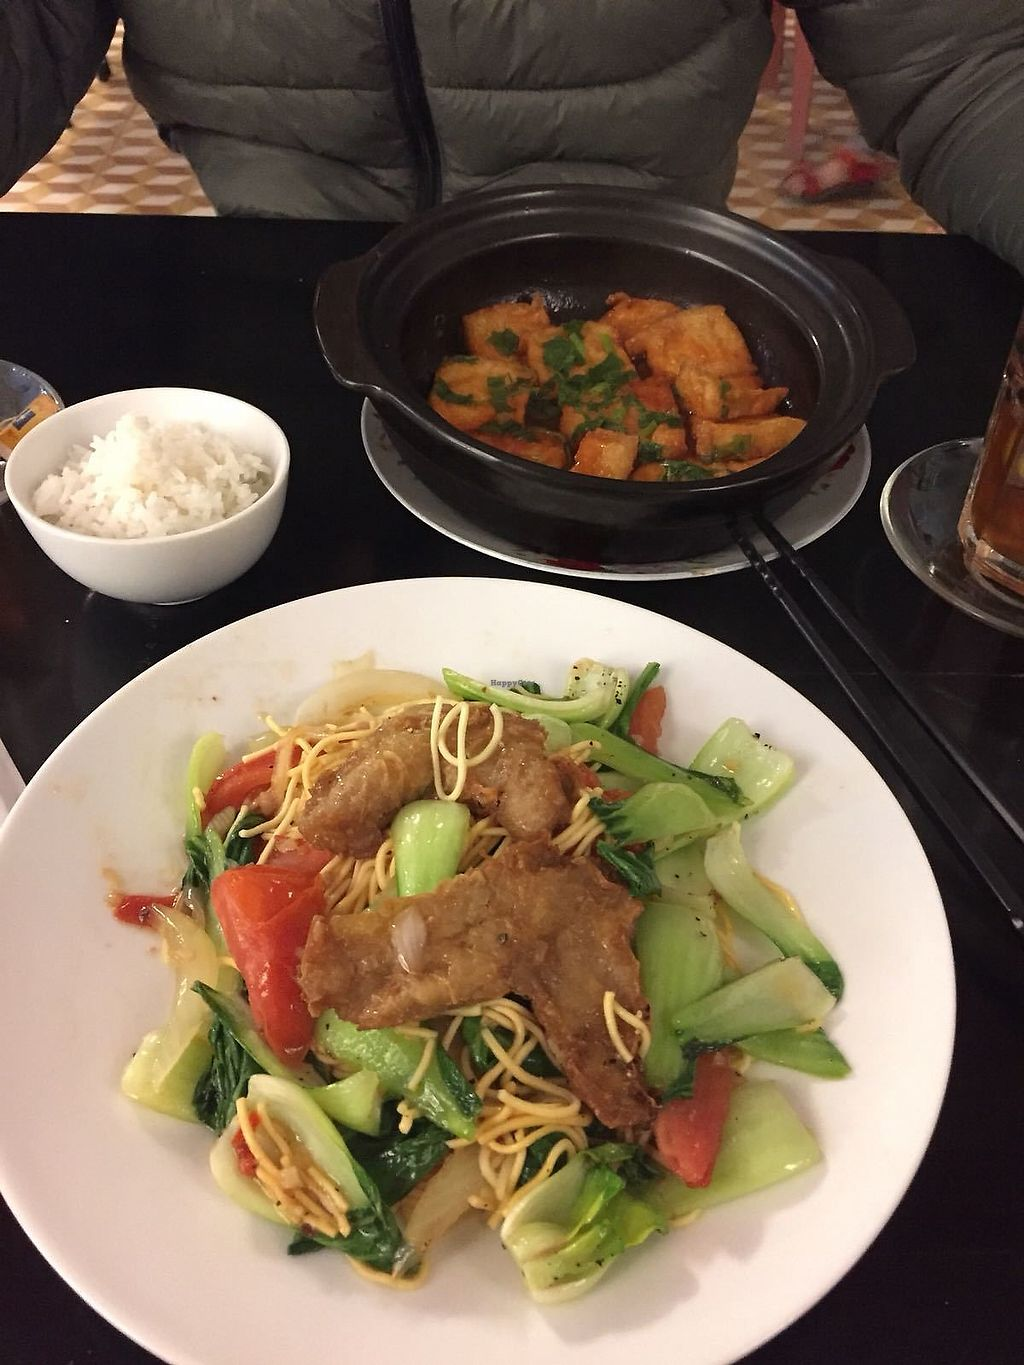 """Photo of Red Chilli  by <a href=""""/members/profile/Saniauskas"""">Saniauskas</a> <br/>Vegan fried Chicken with noodles & stewed tofu in claypot <br/> January 11, 2018  - <a href='/contact/abuse/image/60528/345508'>Report</a>"""